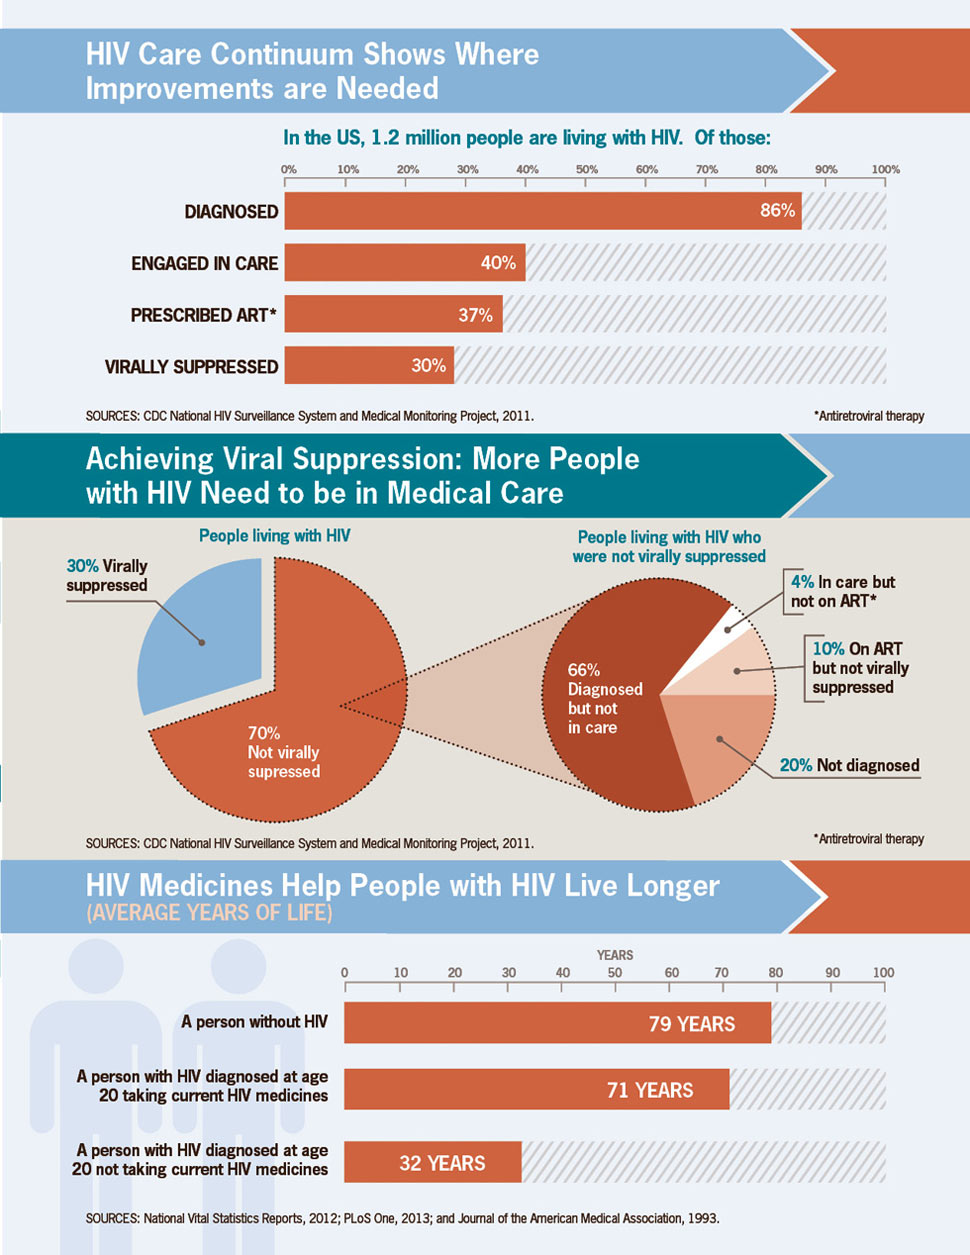 HIV Care Continuum Shows Where Improvements are Needed.